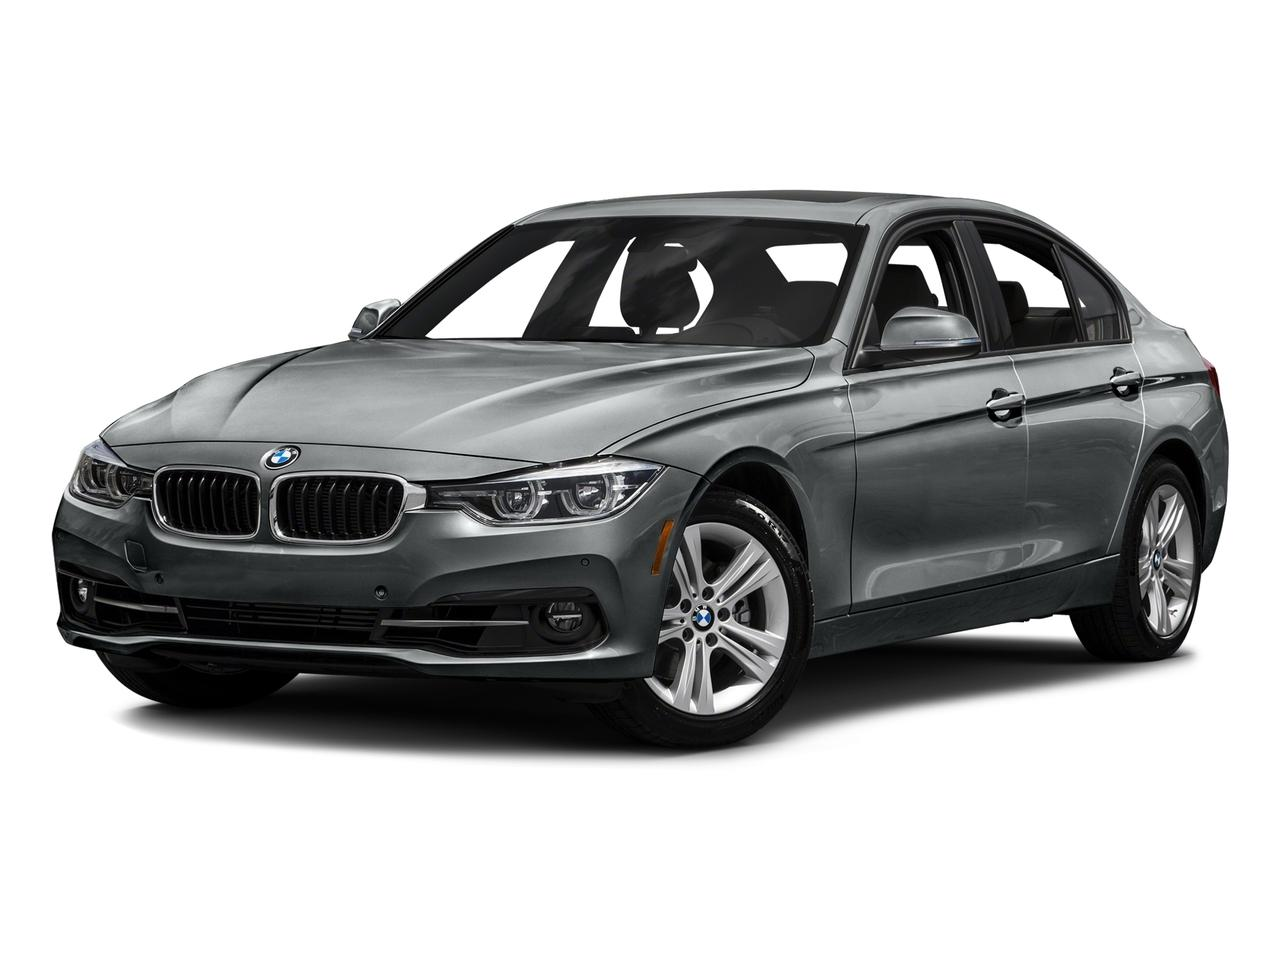 2016 BMW 328i xDrive Vehicle Photo in Pleasanton, CA 94588